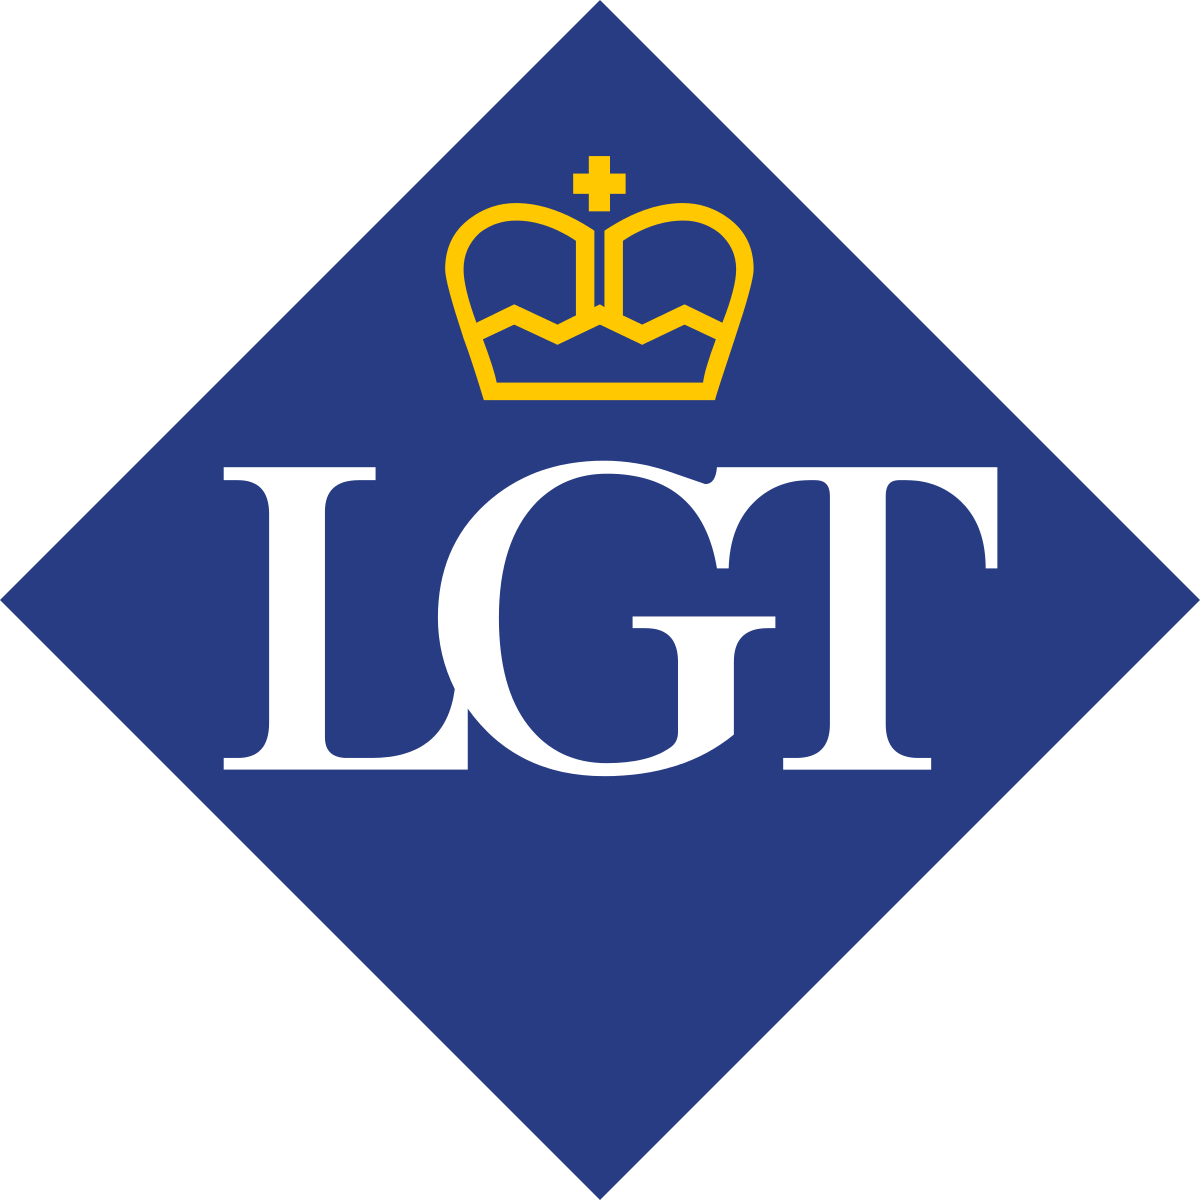 LGT Impact Fellowship 2020 for Business Professionals by LGT Venture Philanthropy, Switzerland: Apply by April 12